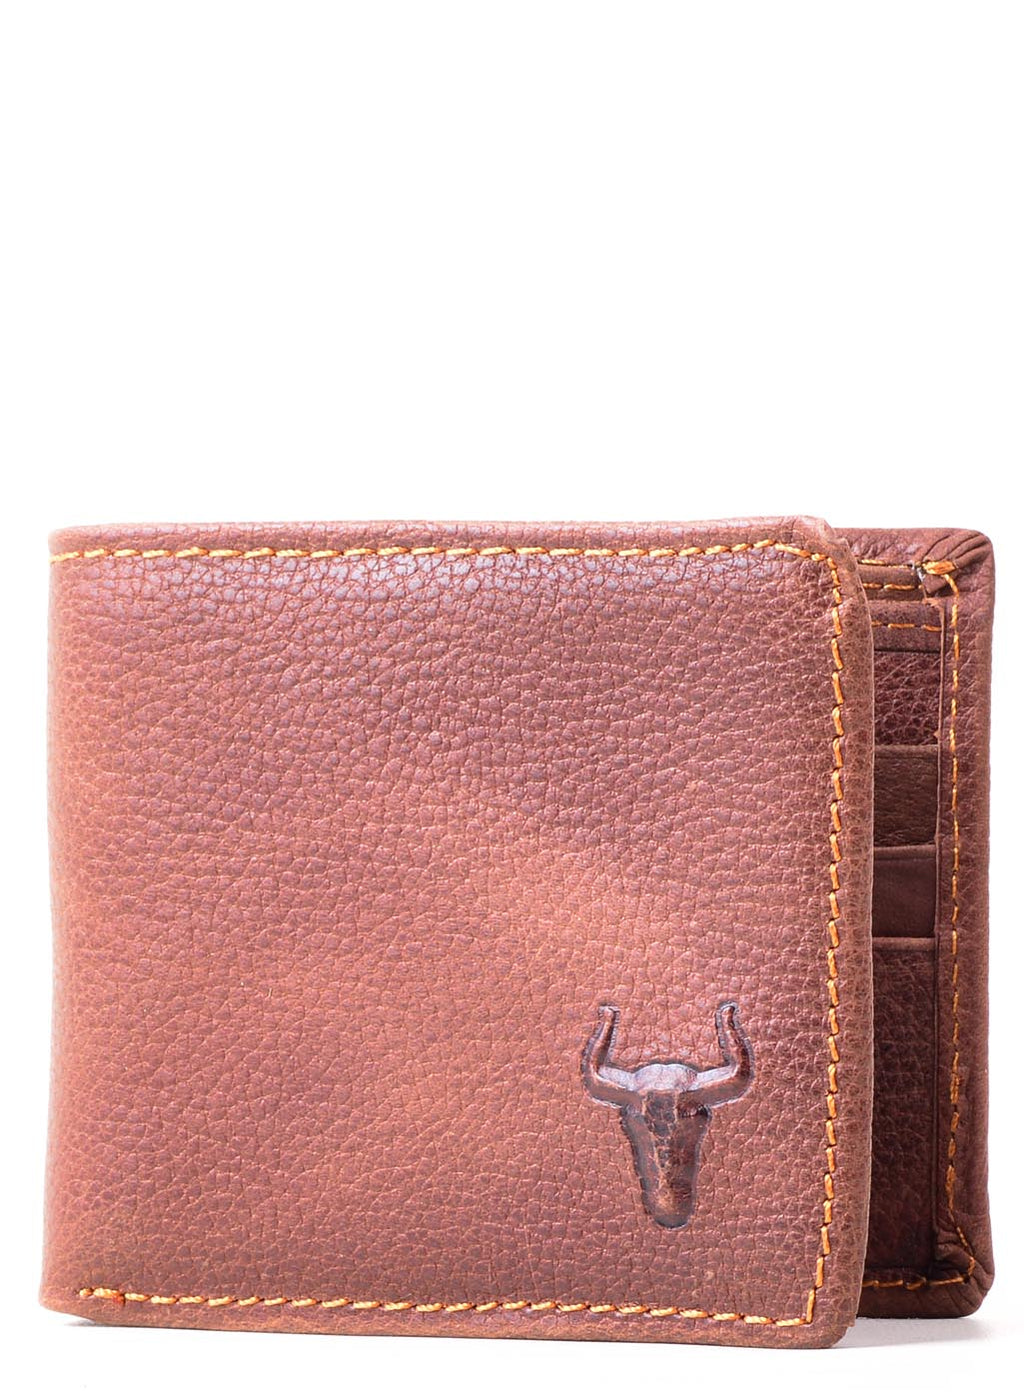 EthniCache Wallet Urbane Handmade Pure Leather Wallet